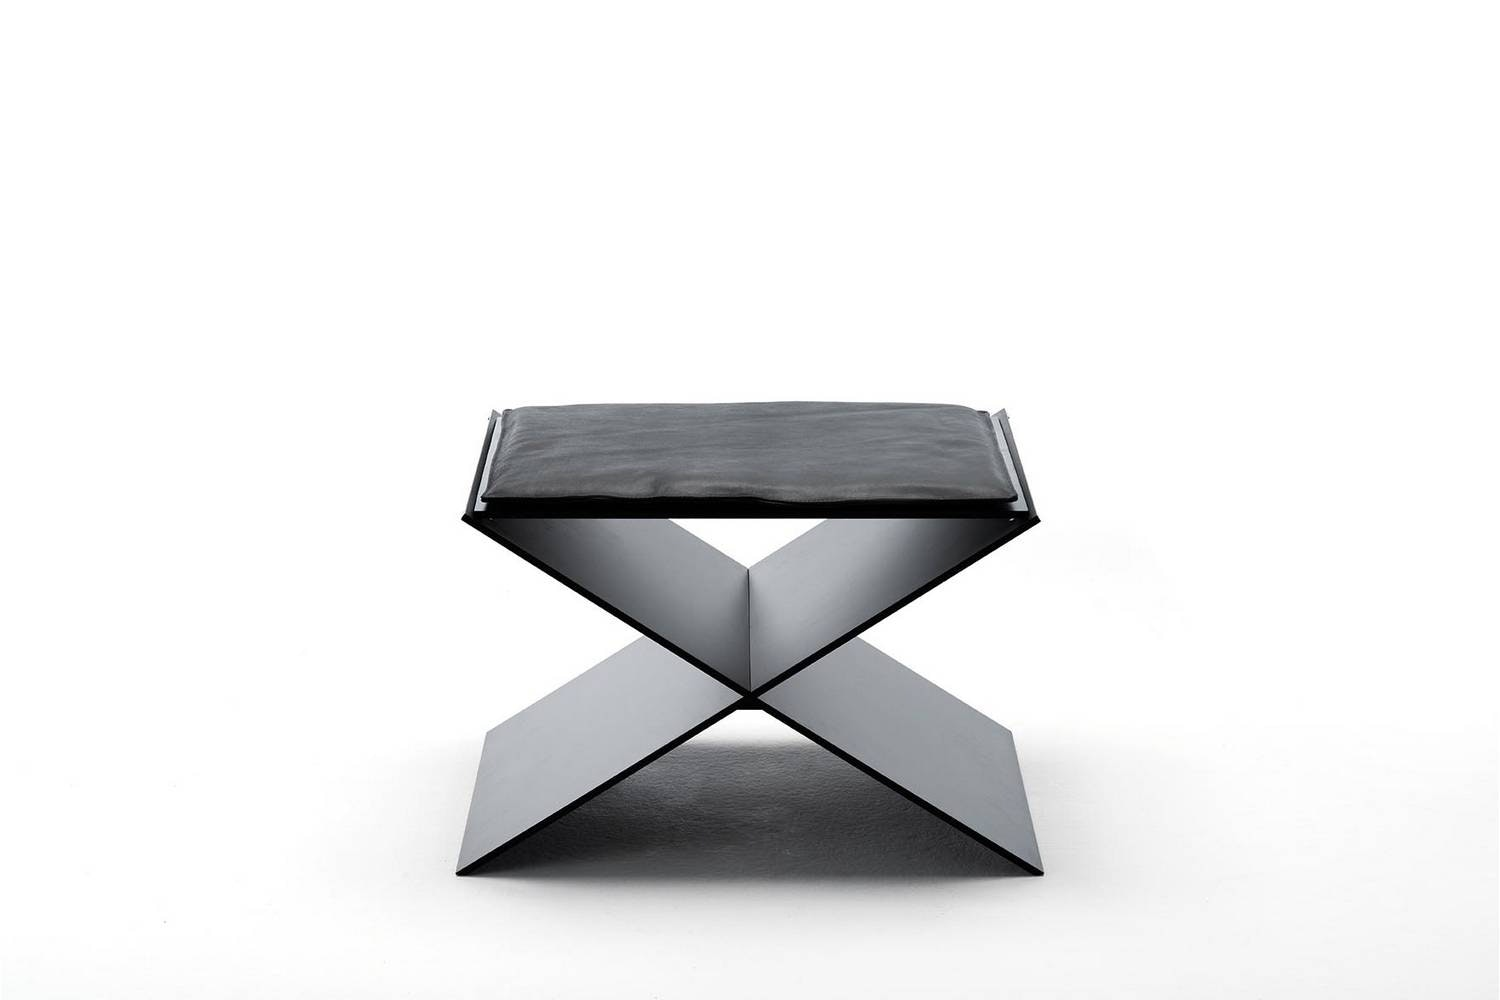 Anin Stool by David Lopez Quincoces for Living Divani